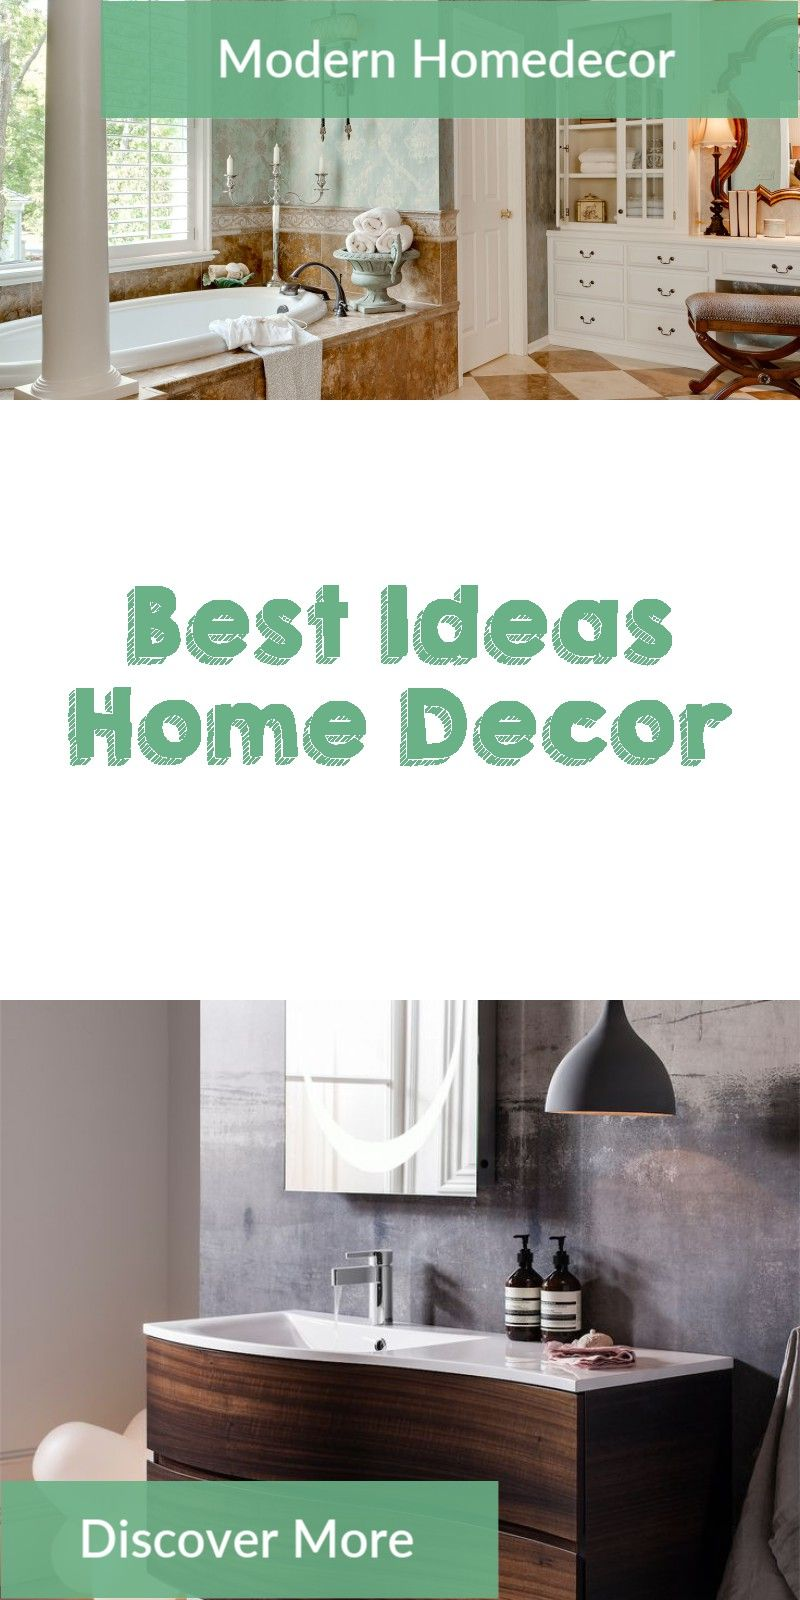 Interior Design Guide On How To Go About At Home Click Image For More Details Interiordesign Improvement Remodeling Useful